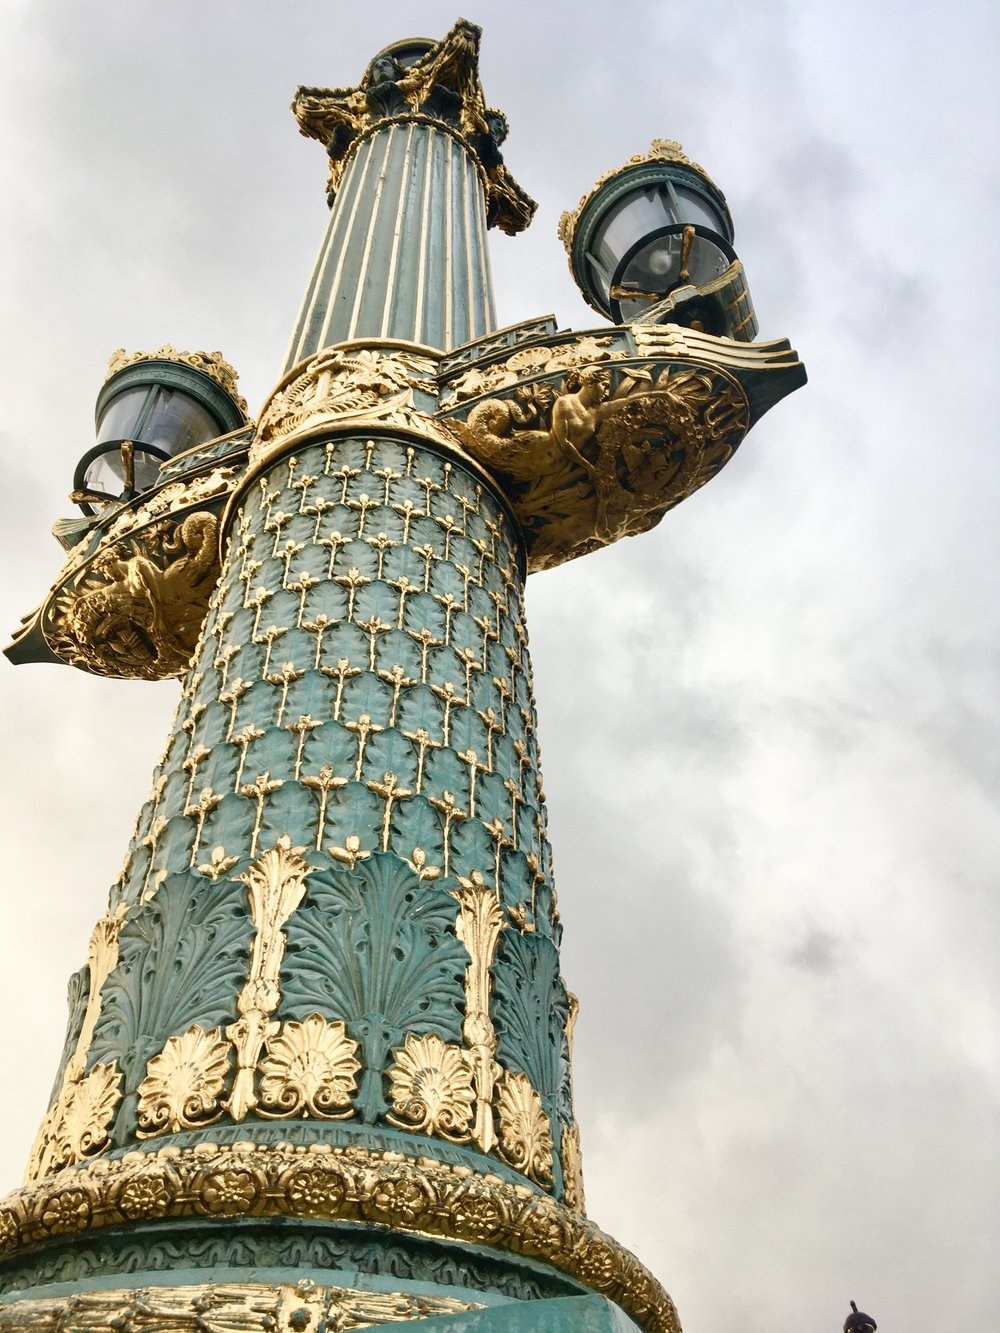 Someone took their time and fabricated this to make this column as beautiful as possible for the sake of beauty.  We don't make things like this anymore!  The colors and details on this column in the Place de la Concorde 😍